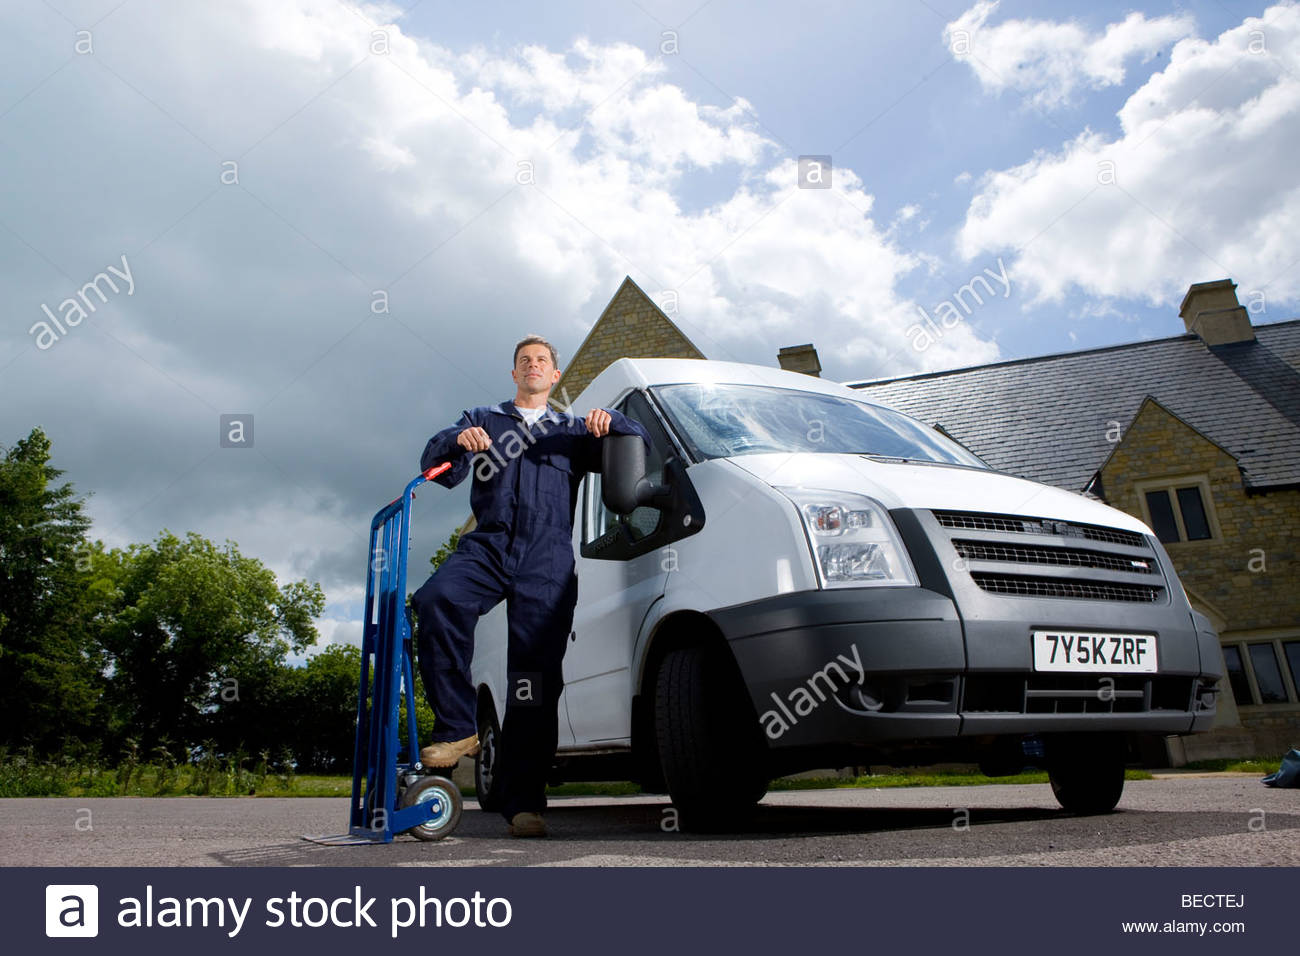 Man in coveralls leaning on hand truck near work van - Stock Image